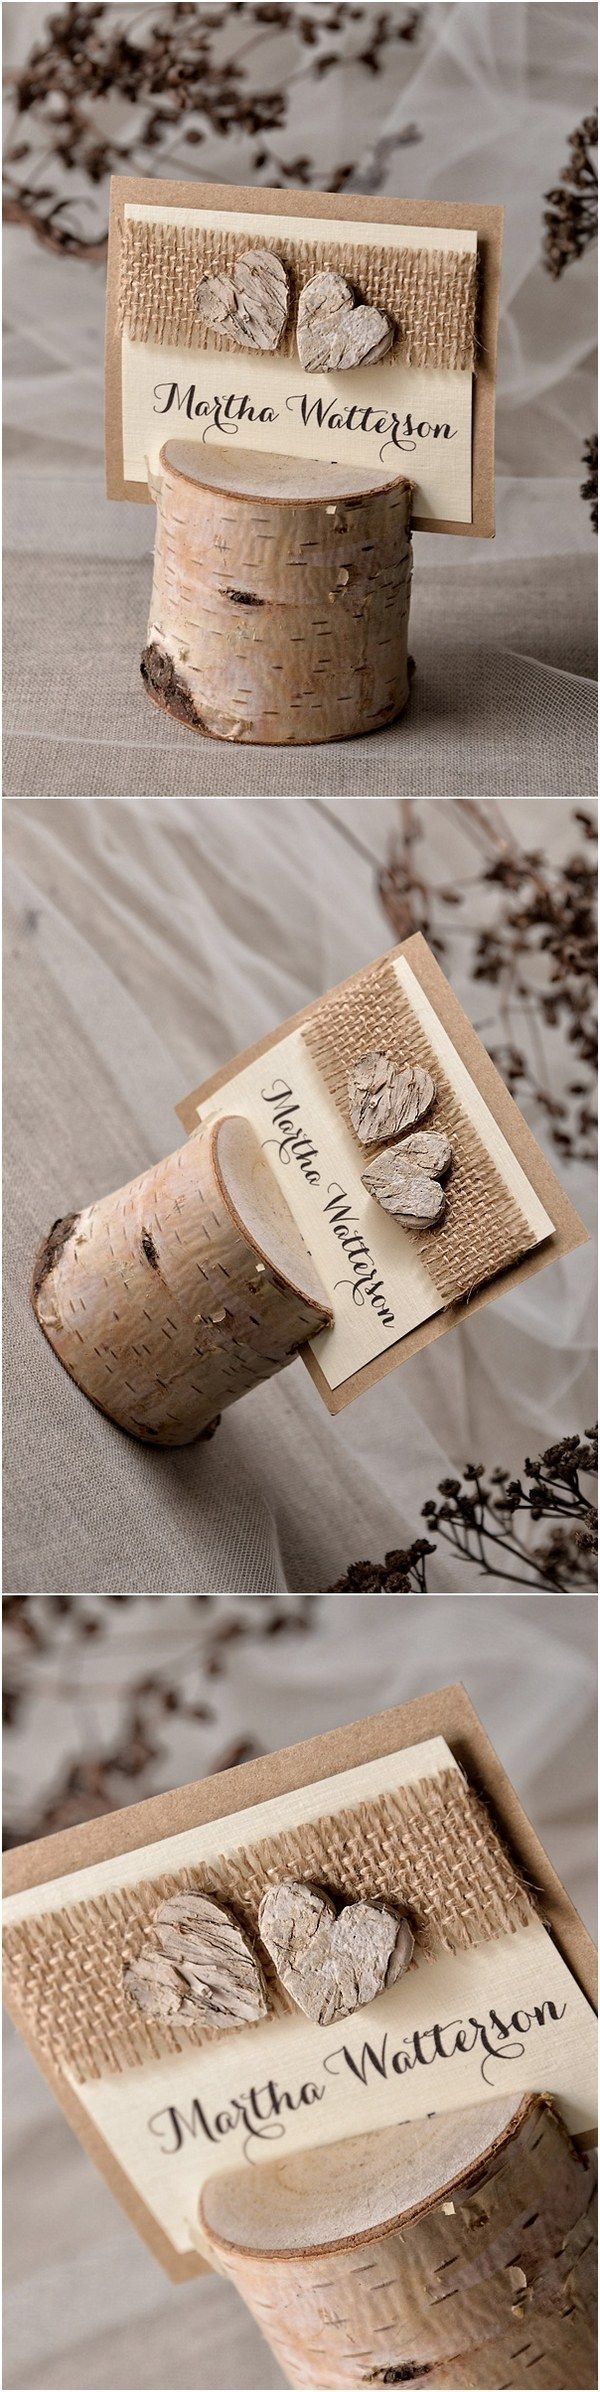 Rustic country burlap and birch real wood wedding place cards #countrywedding #rusticwedding #dpf #DIYRusticWeddingwood